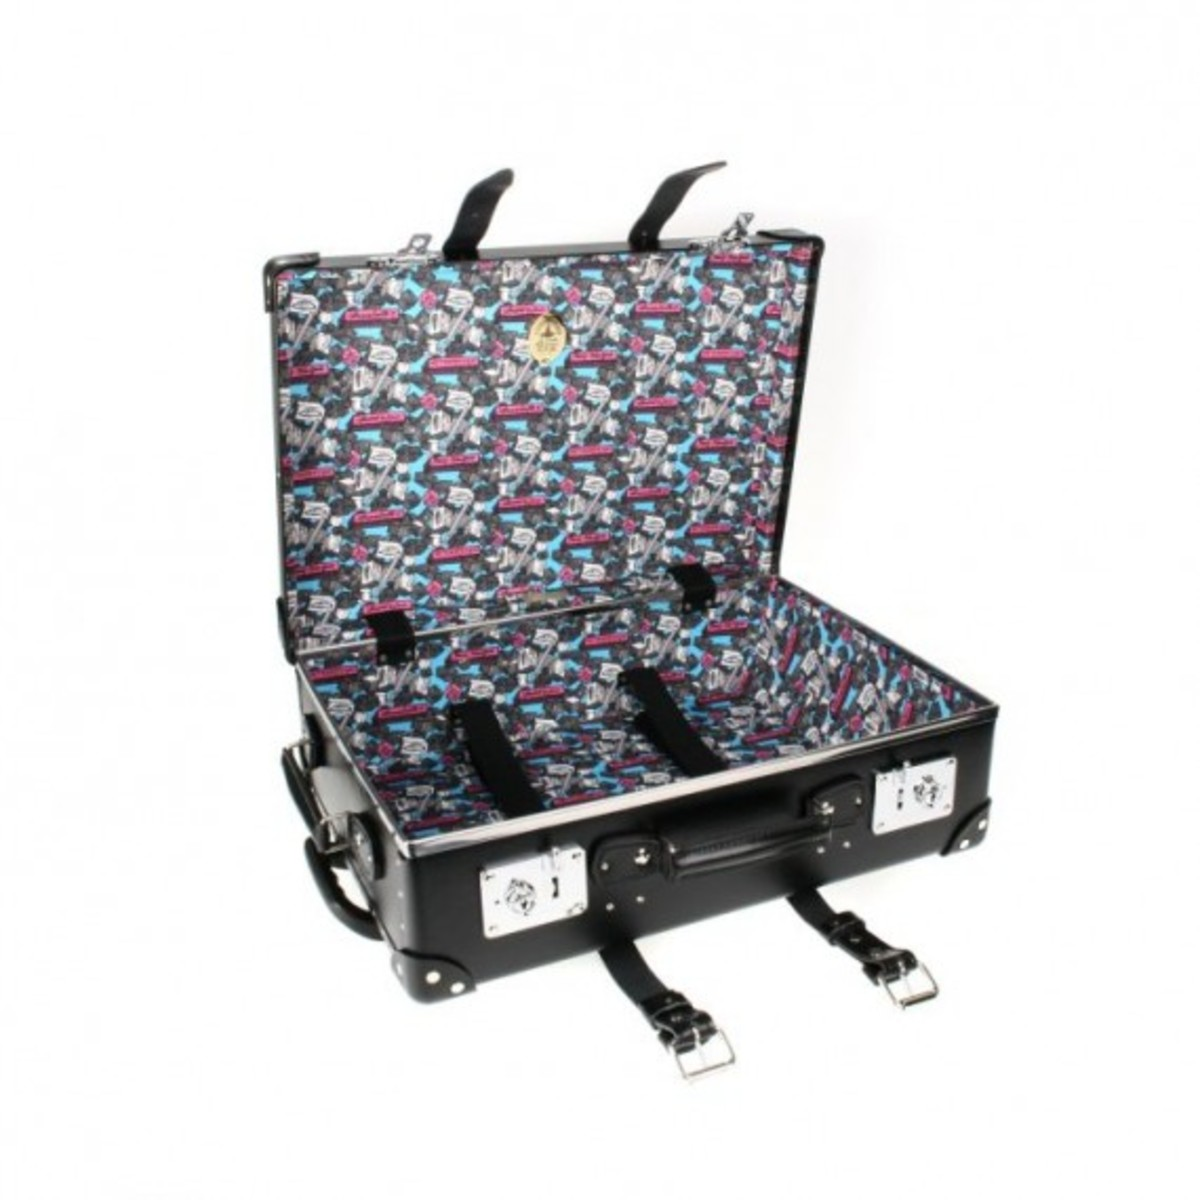 globe-trotter-x-andre-mr-a-luggage-collection-6